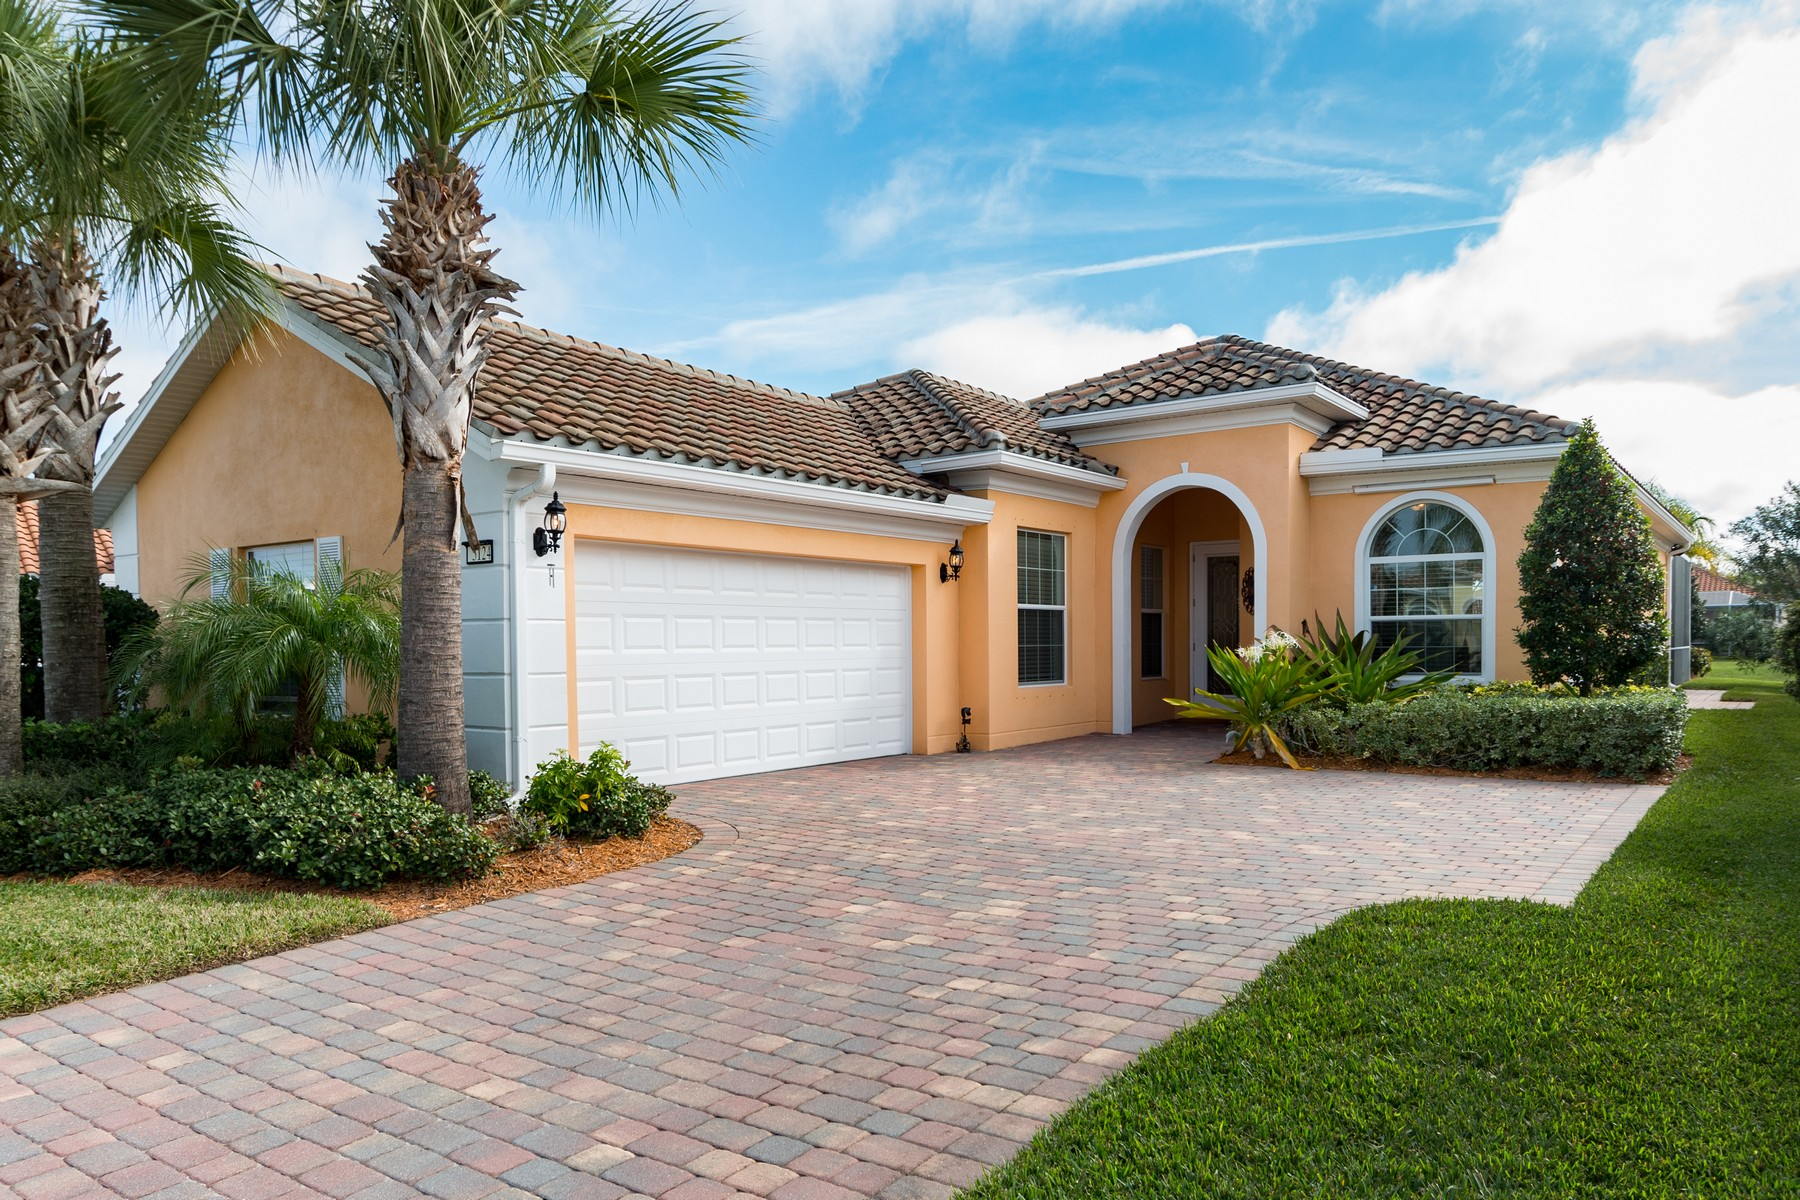 Property for Sale at Picture Perfect Pool Home 5124 Formosa Circle Vero Beach, Florida 32967 United States